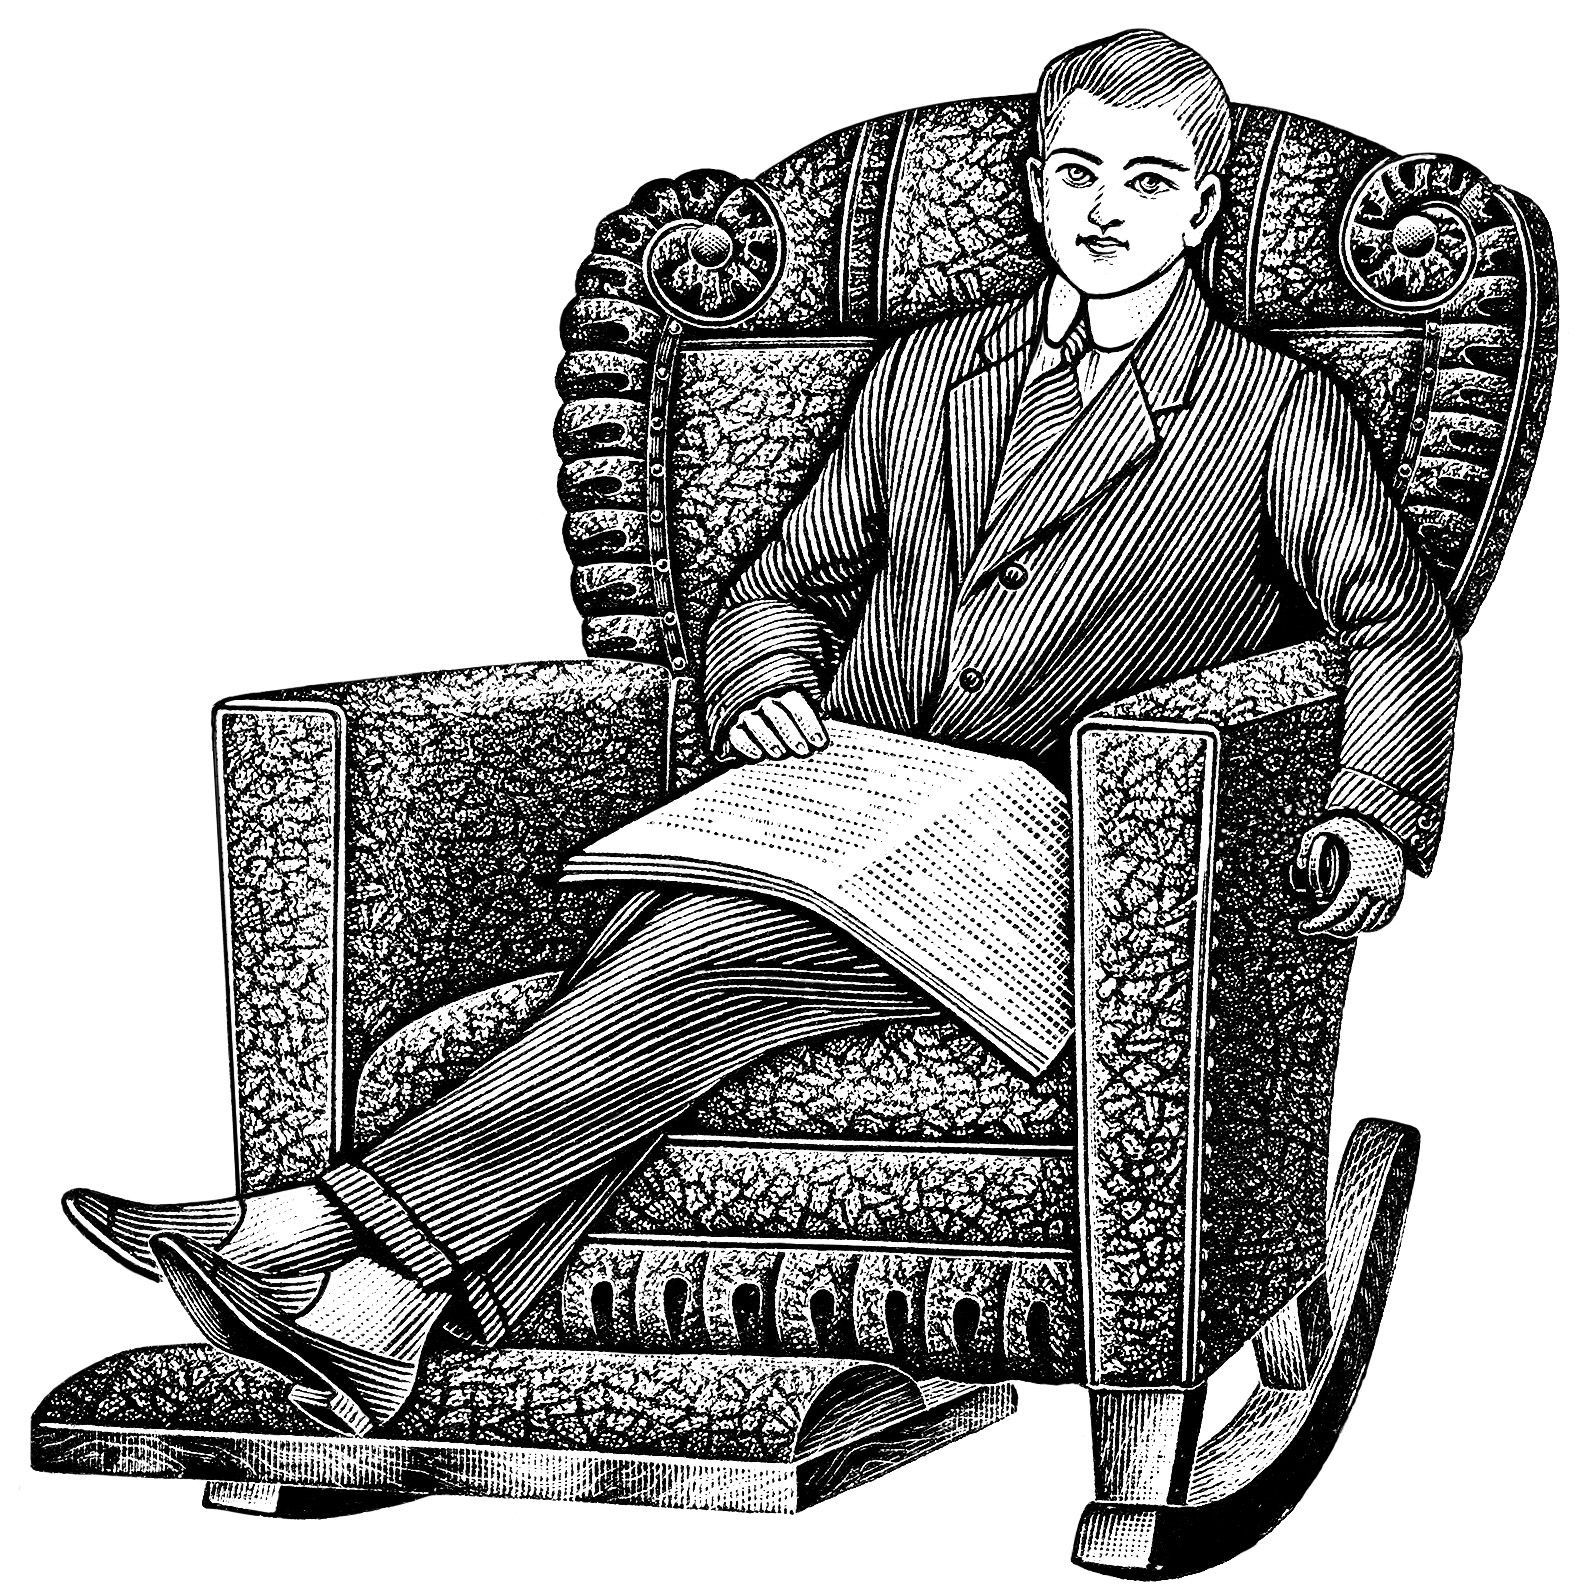 Recliner chair vector clipart black and white graphic freeuse stock black and white clipart, old catalogue listing, vintage recliner ... graphic freeuse stock